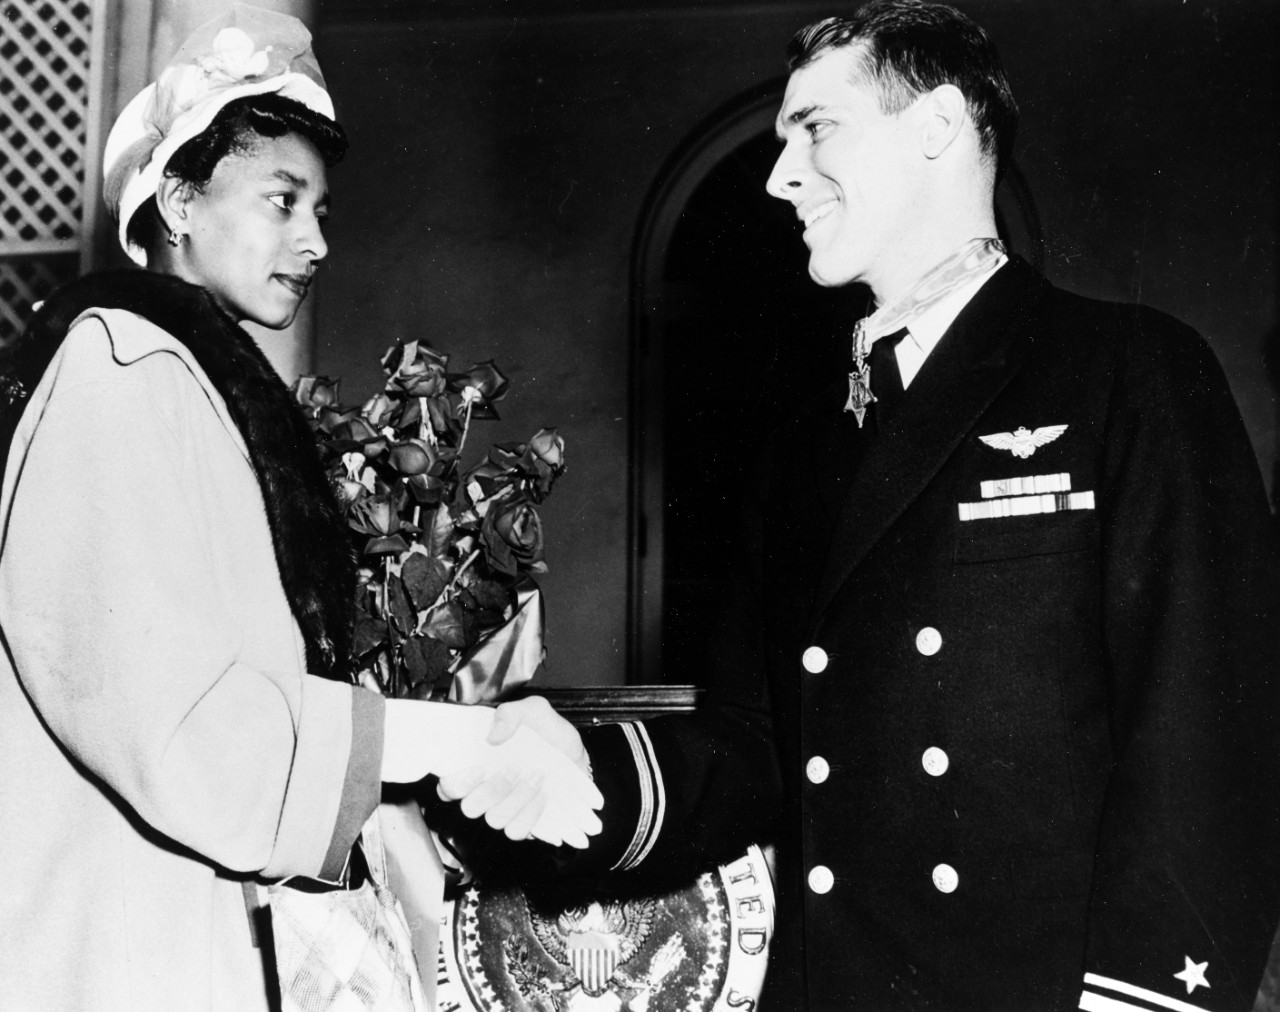 Hudner shaking hands with Ensign Brown's widow